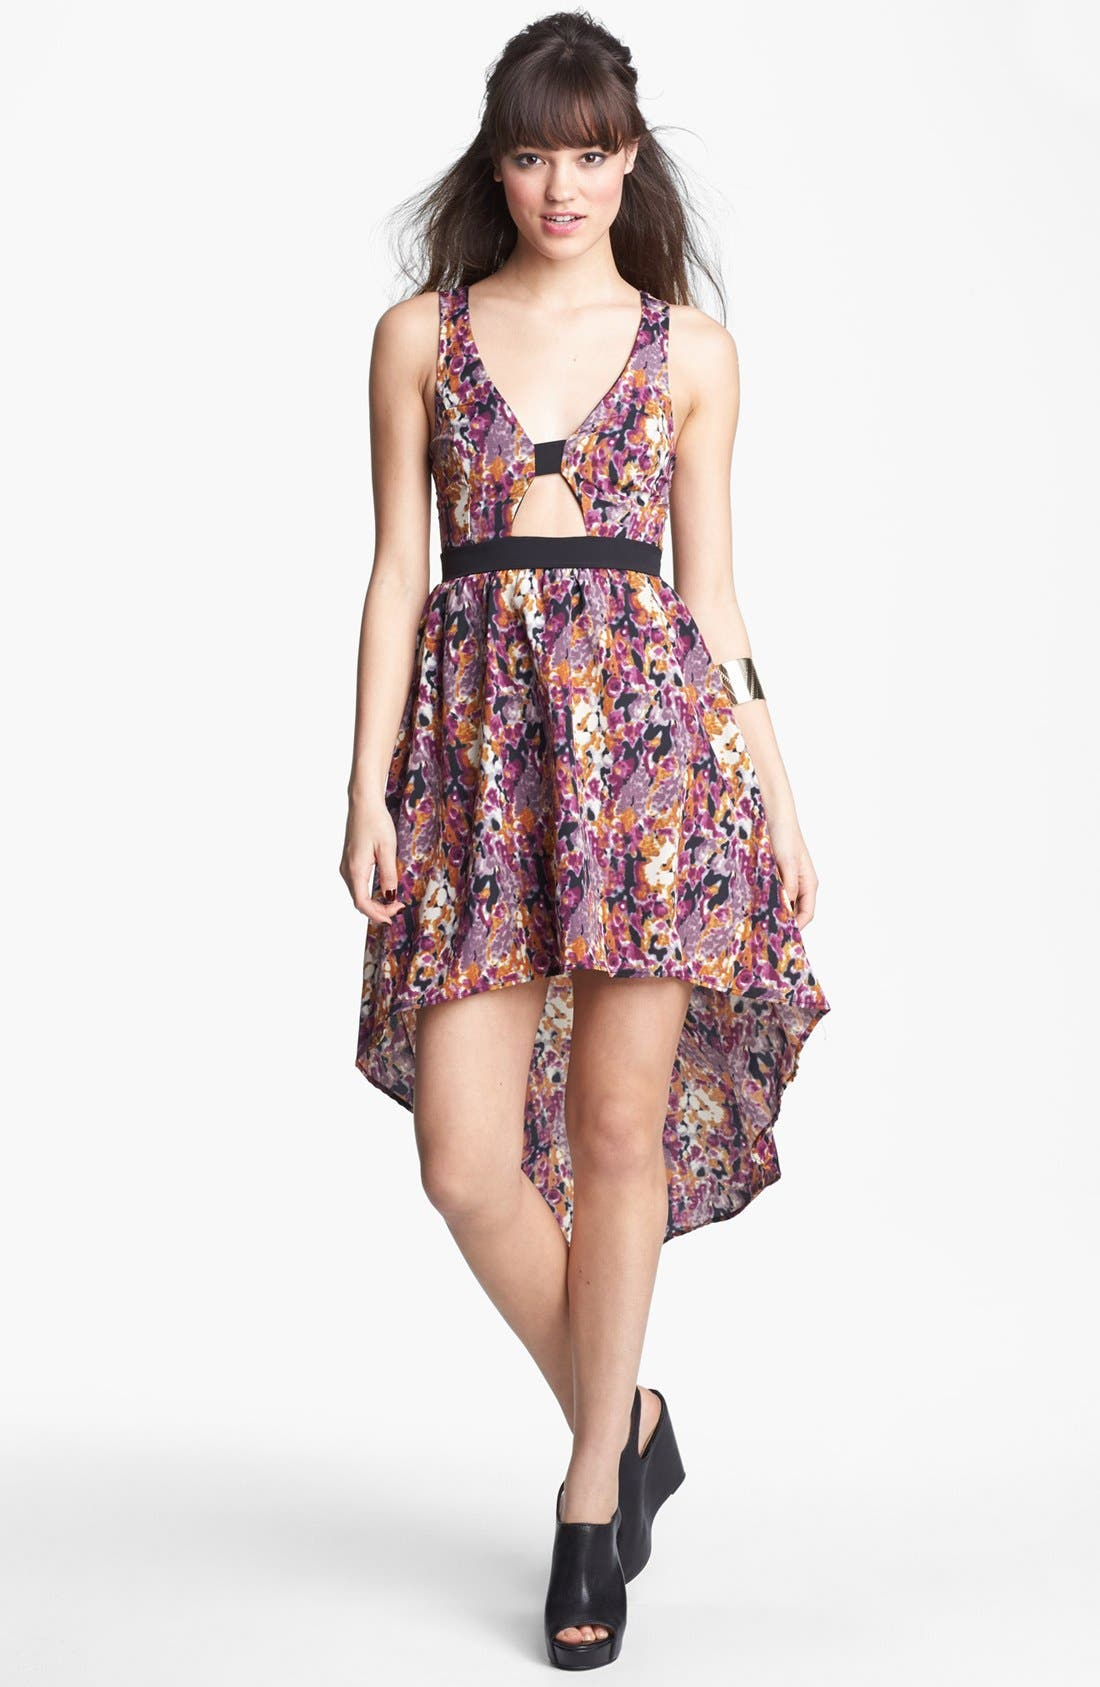 Alternate Image 1 Selected - Lush Cutout High/Low Dress (Juniors) (Online Only)